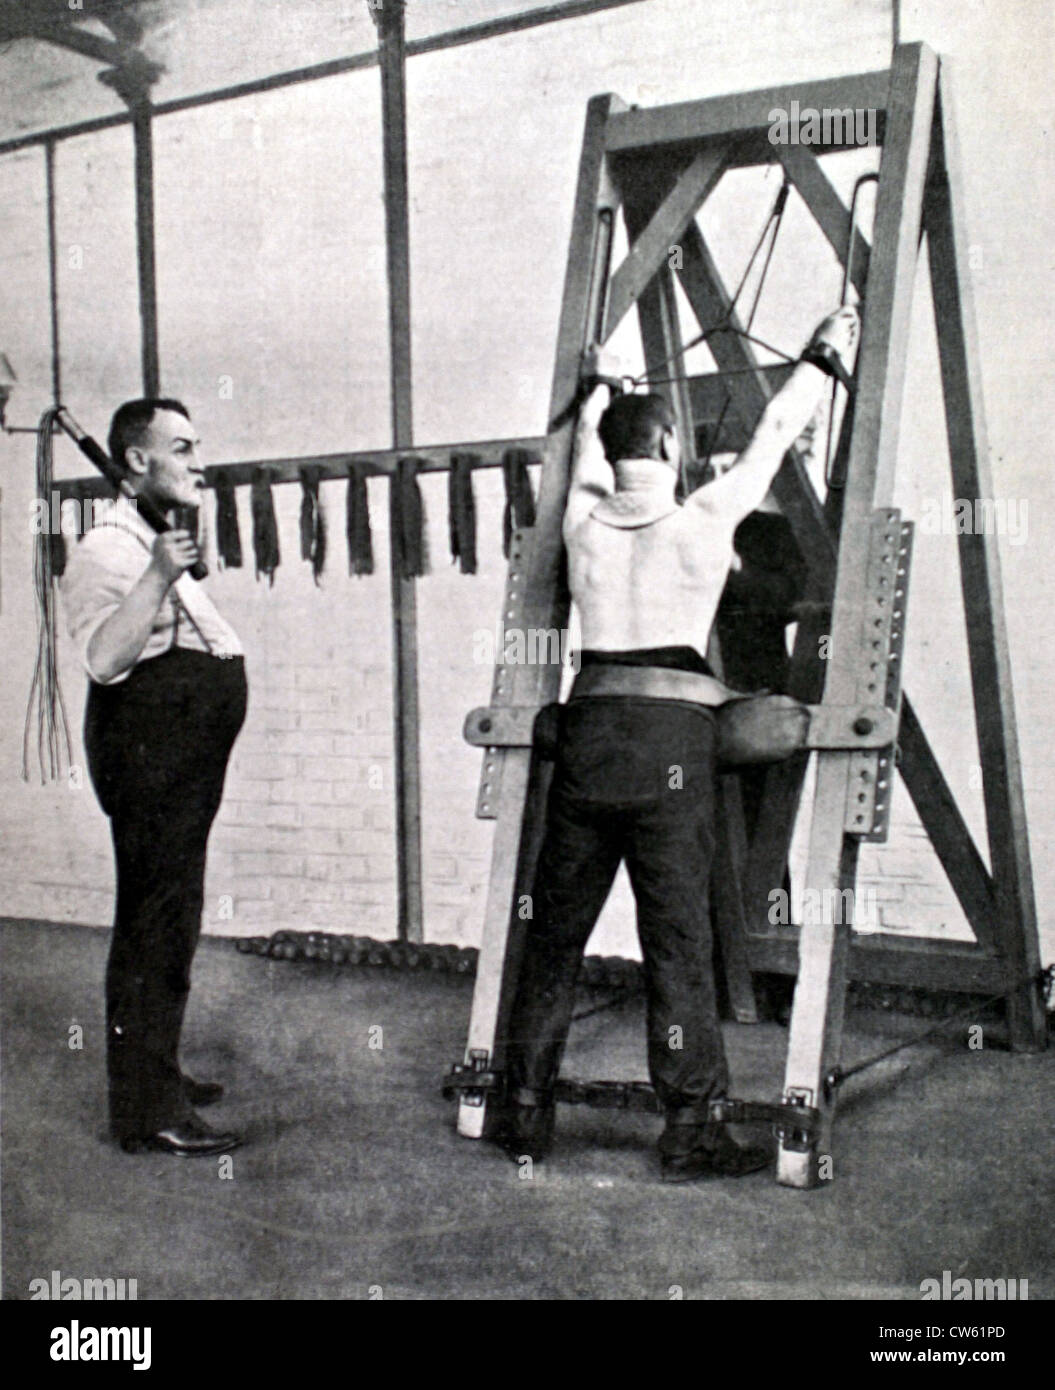 The 'cat-o'-nine-tails' torture in a prison of London (1910) - Stock Image